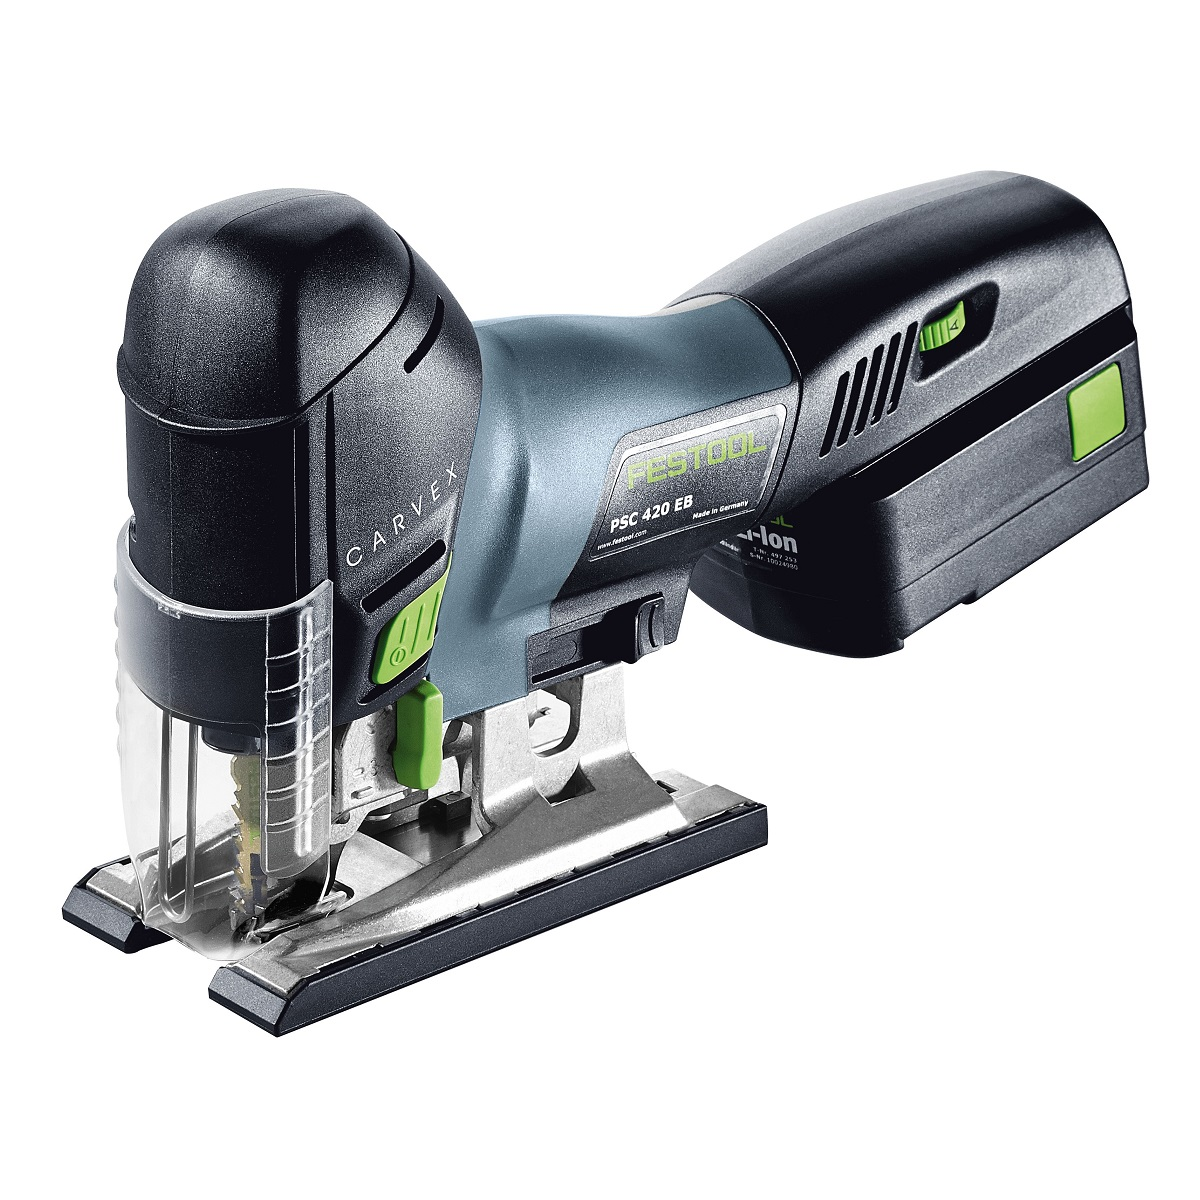 FESTOOL 561666 PSC420 18V JIGSAW WITH 1X4.0AH LI-ION BATTERY